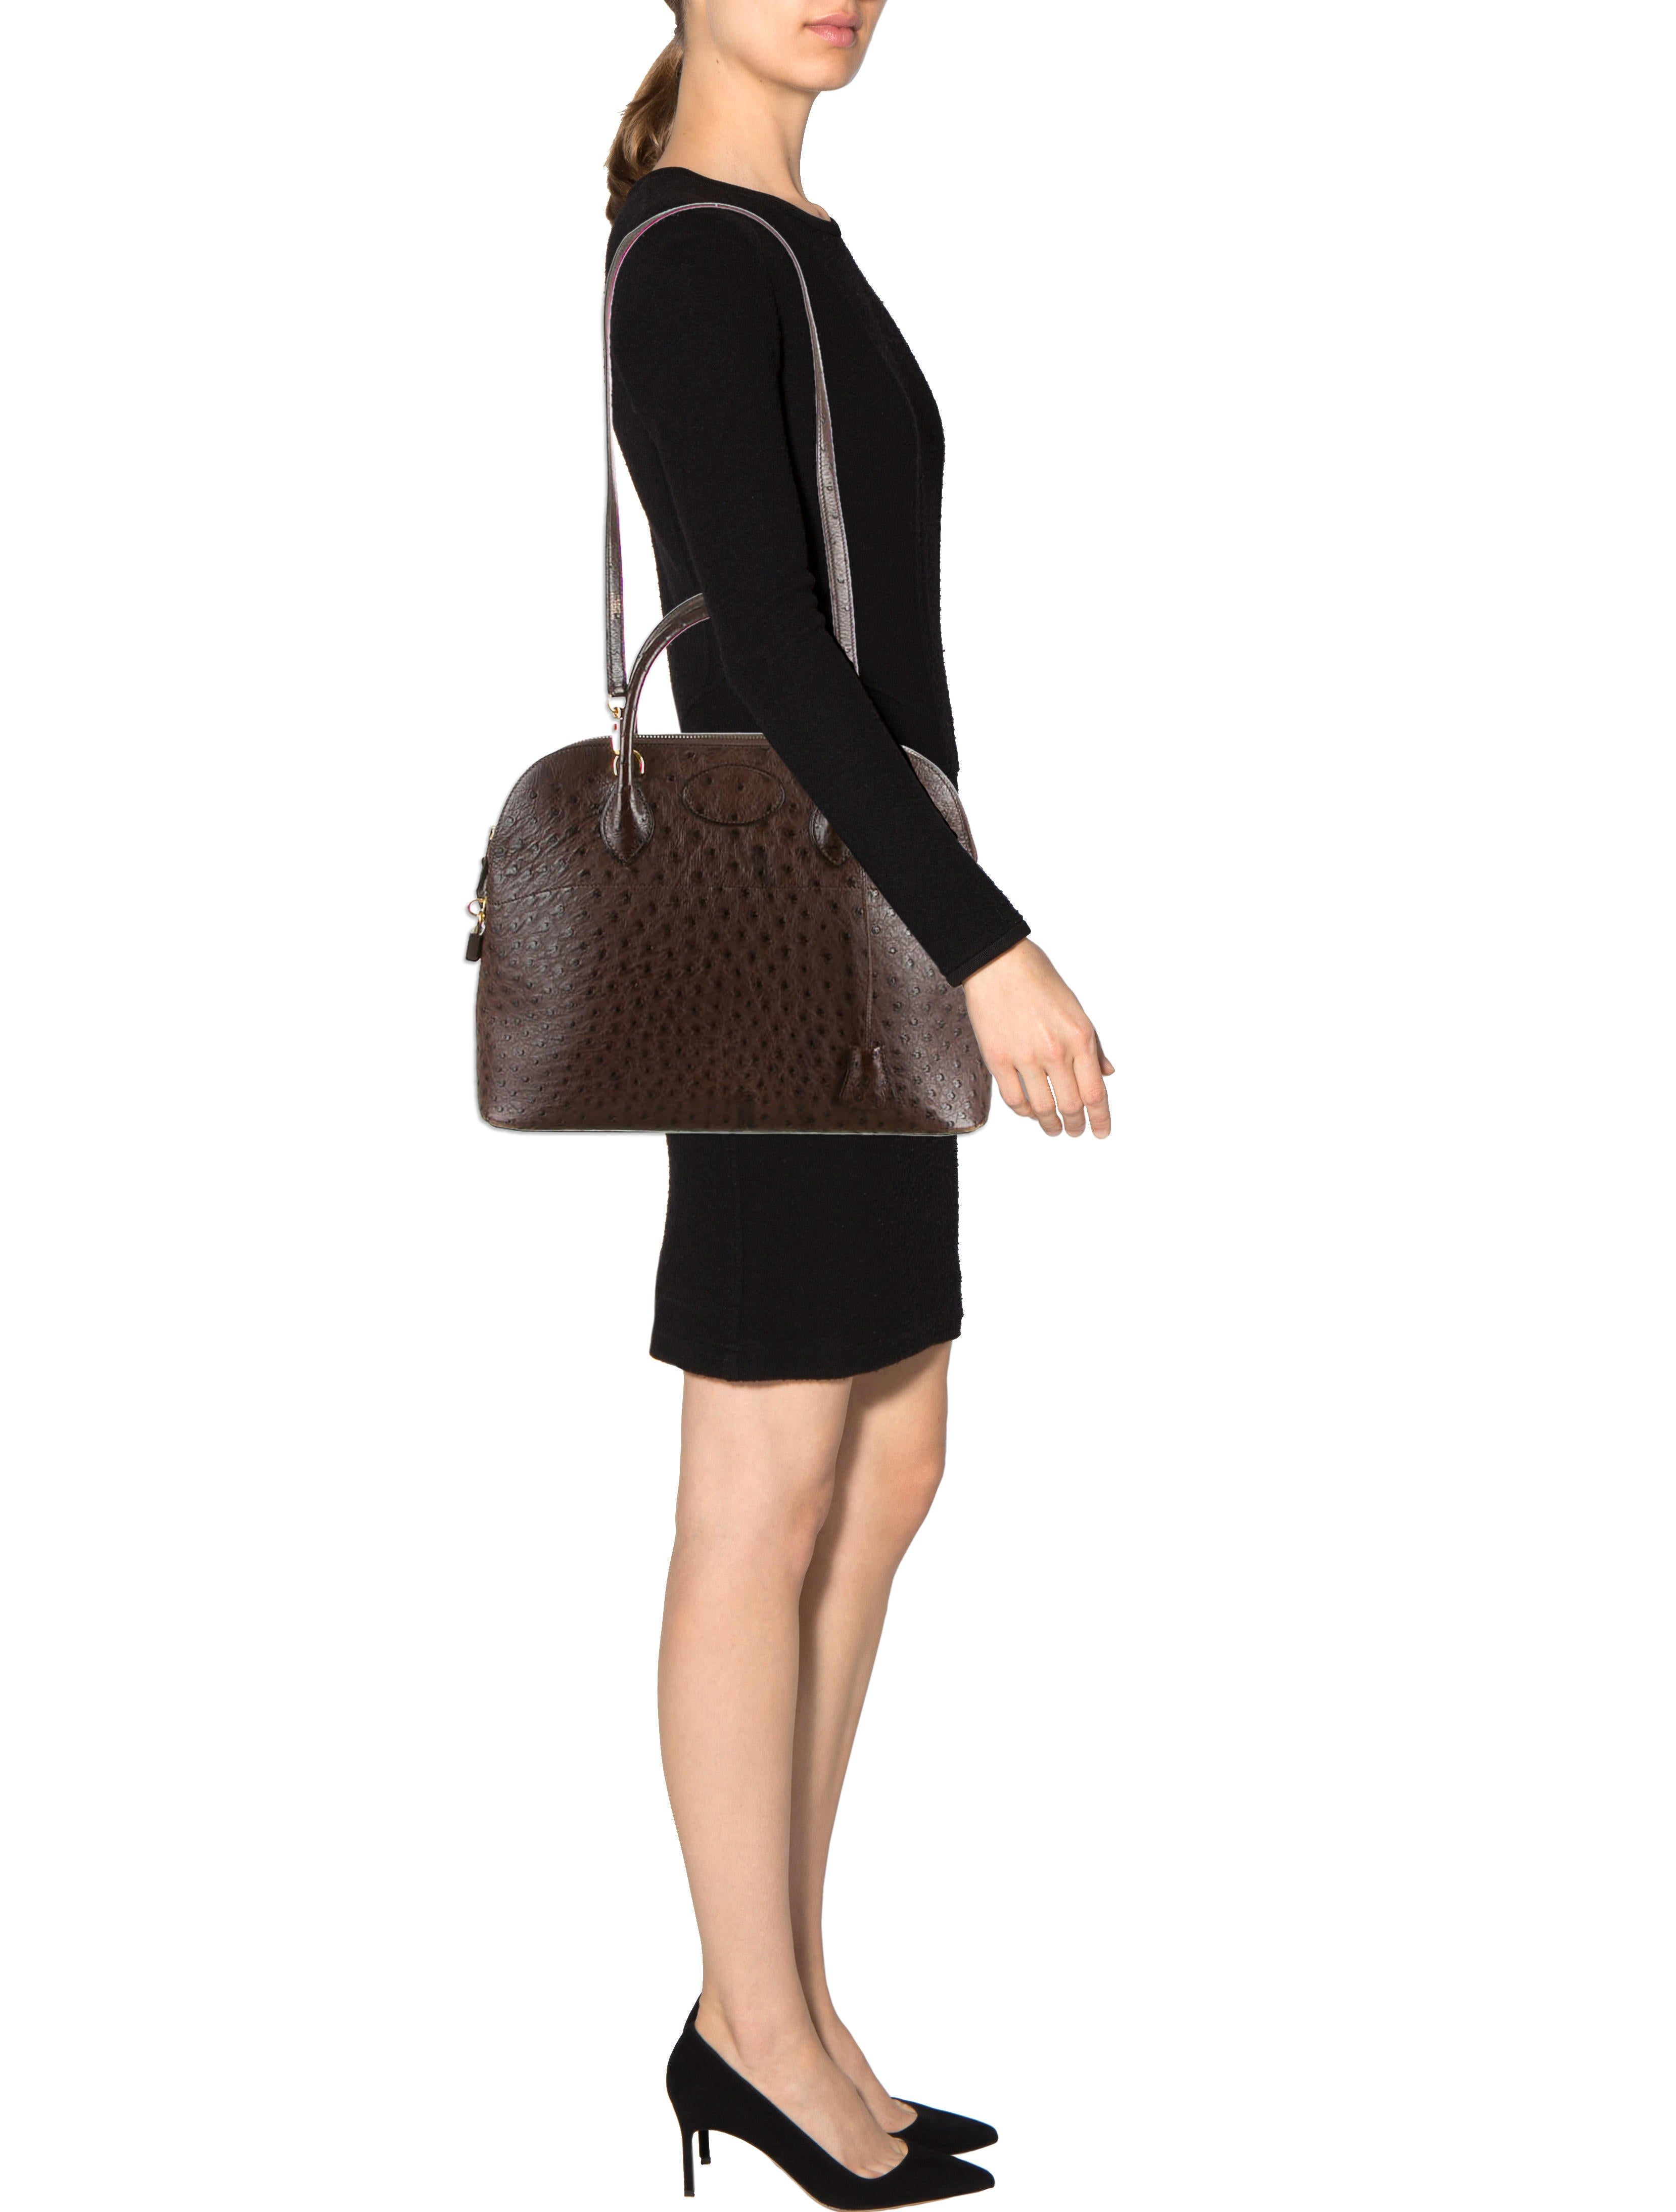 Herm��s Ostrich Bolide 35 - Handbags - HER40978 | The RealReal